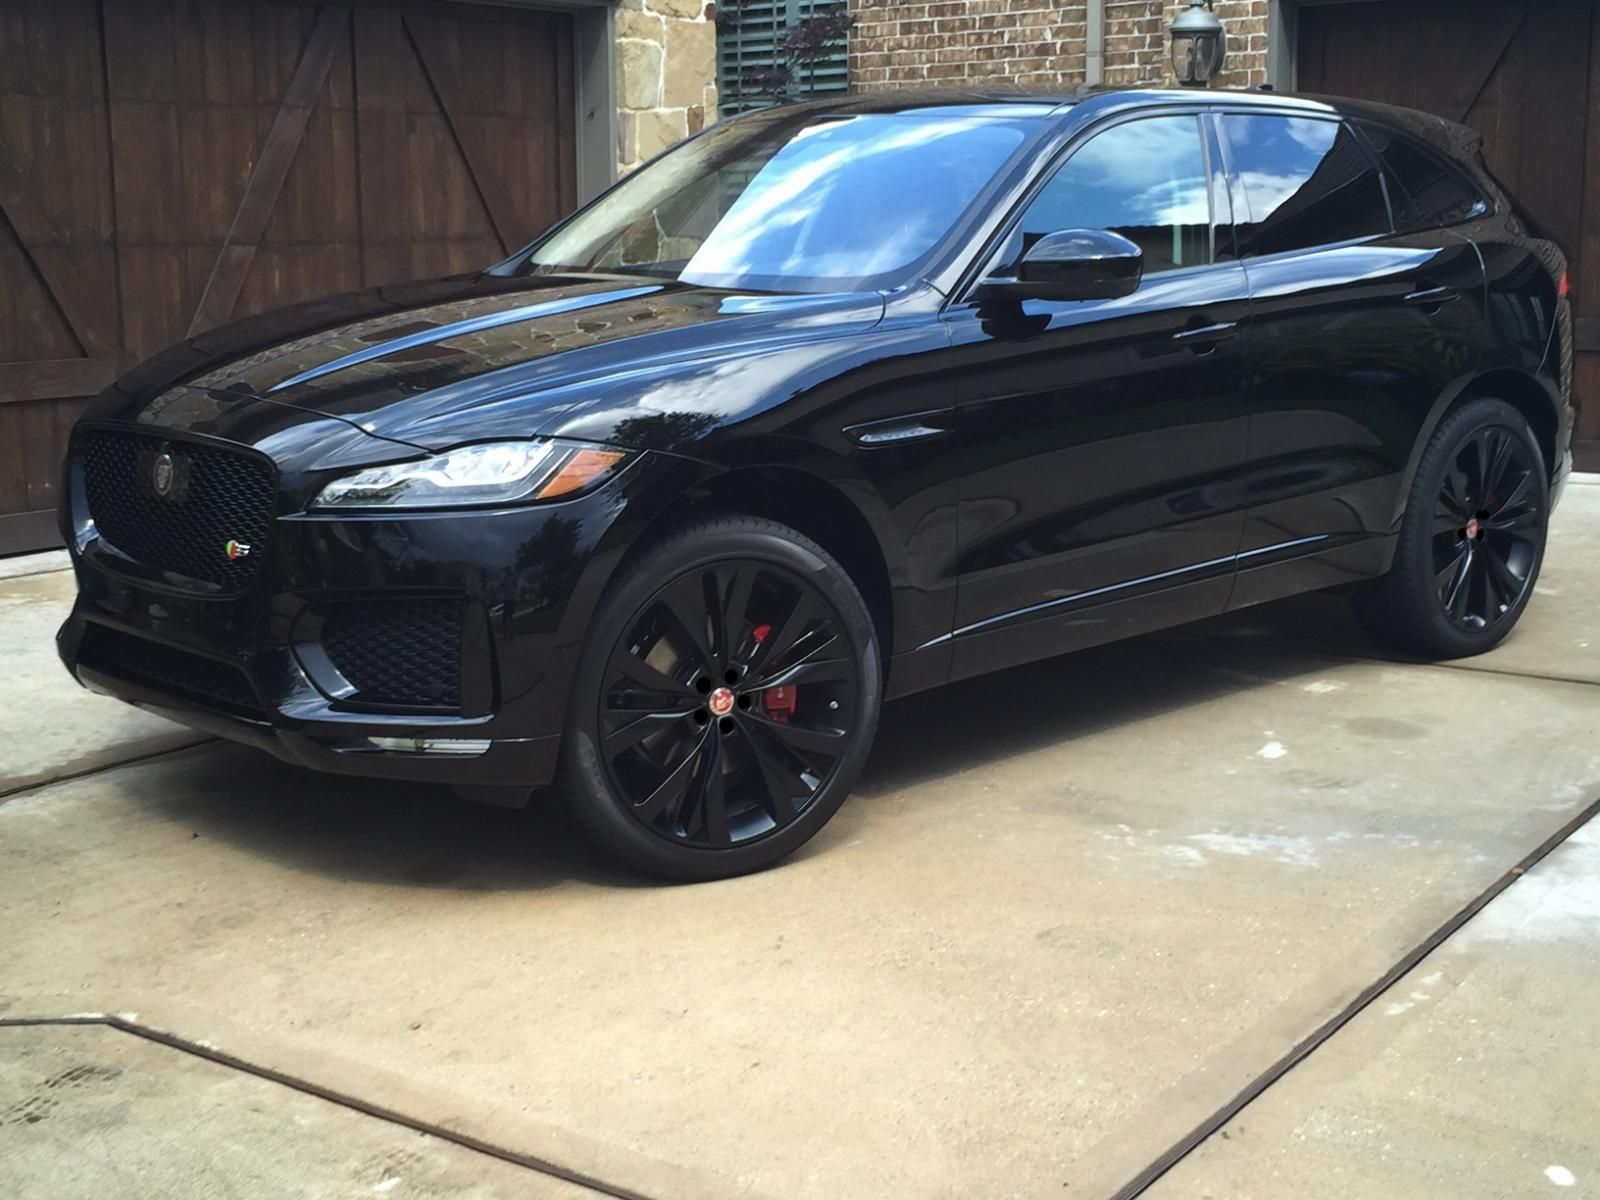 Jaguar 2017 Gots To Have This As Soon As The Price Go